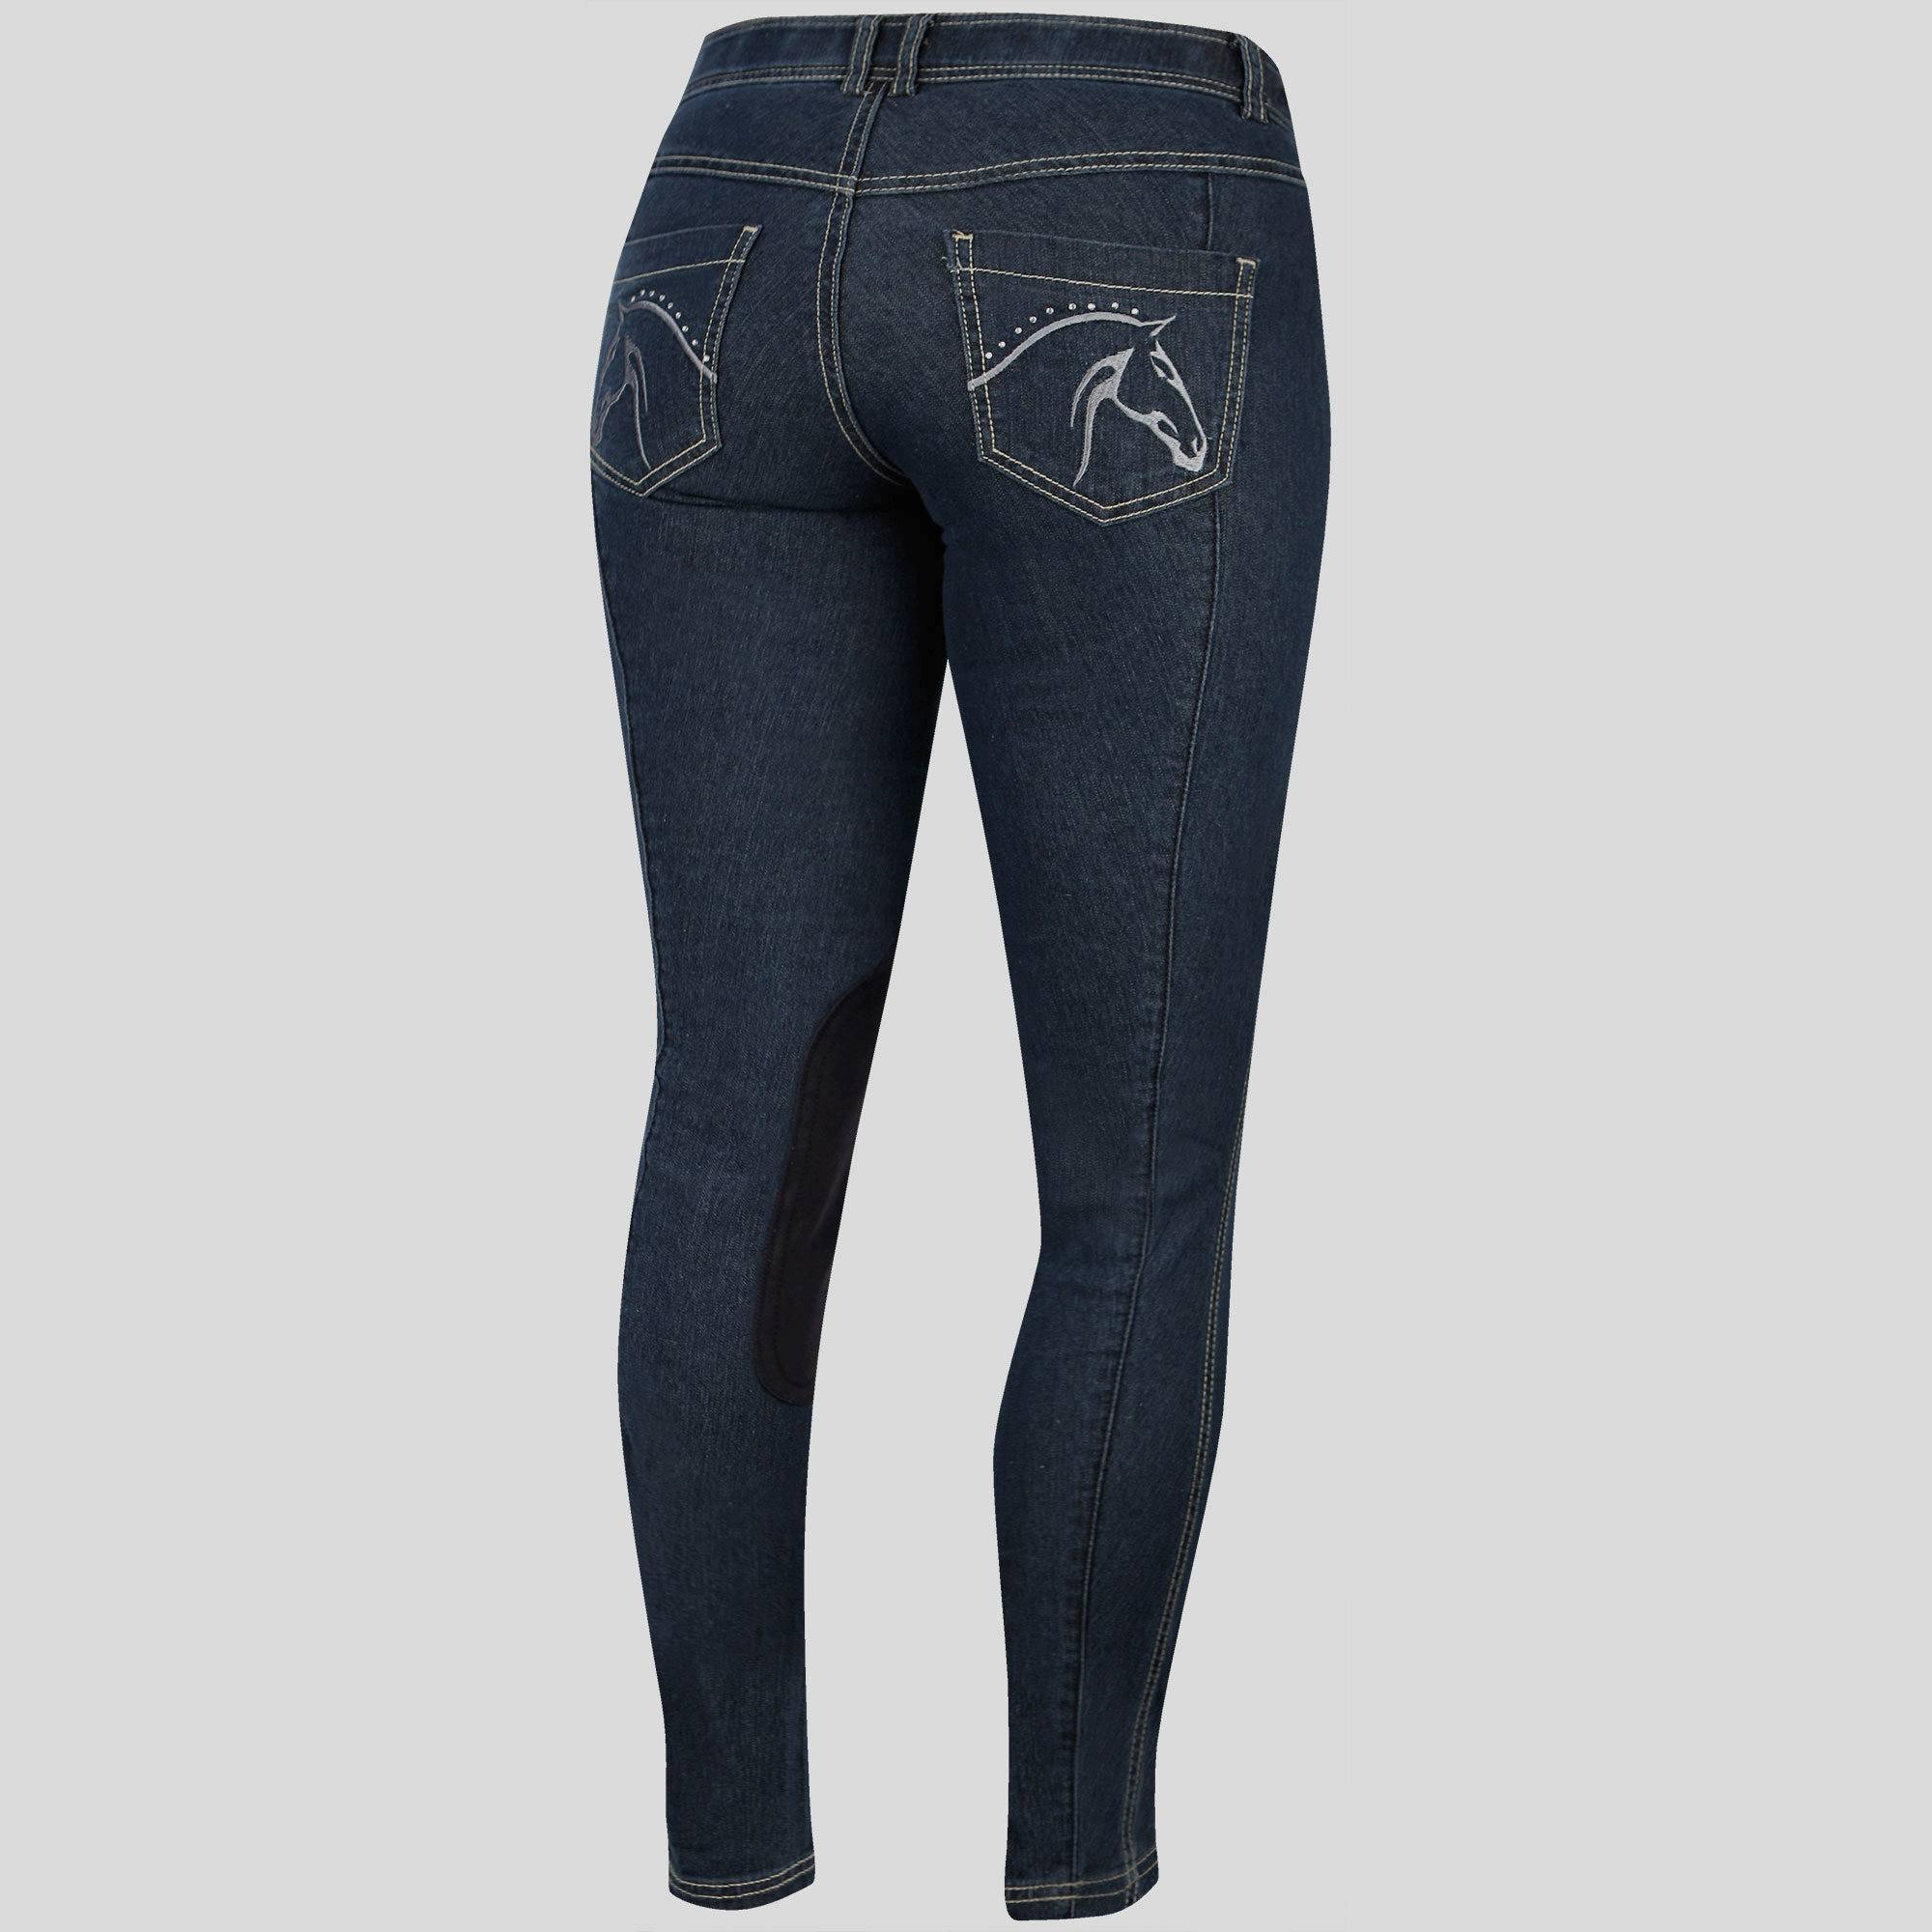 Irideon Women's Stretch Denim Diamond Horse Breech